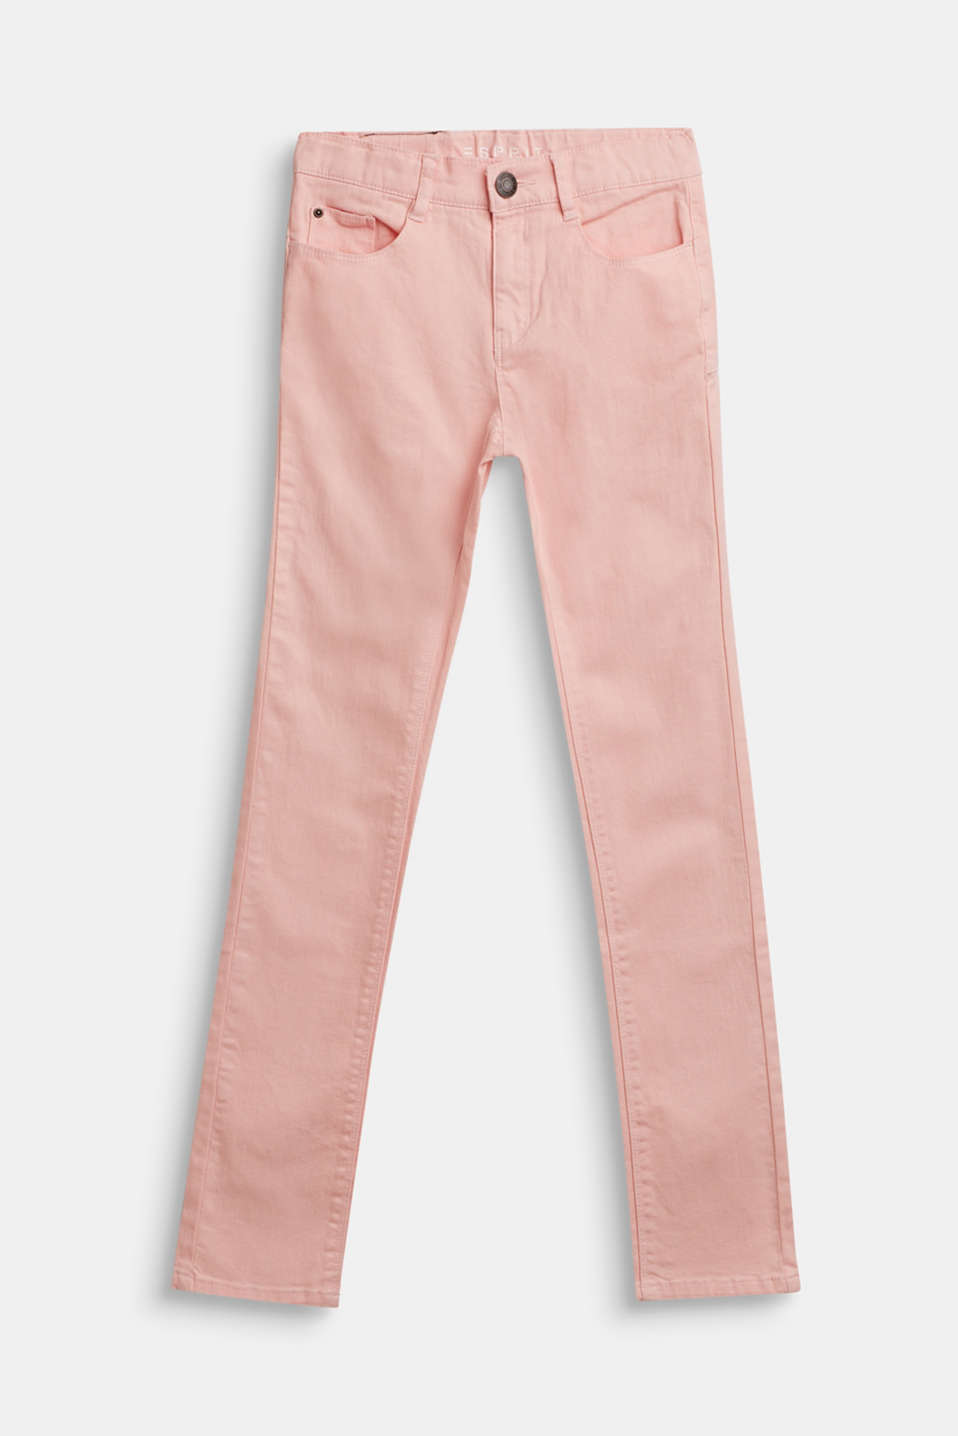 Esprit - Coloured stretch jeans